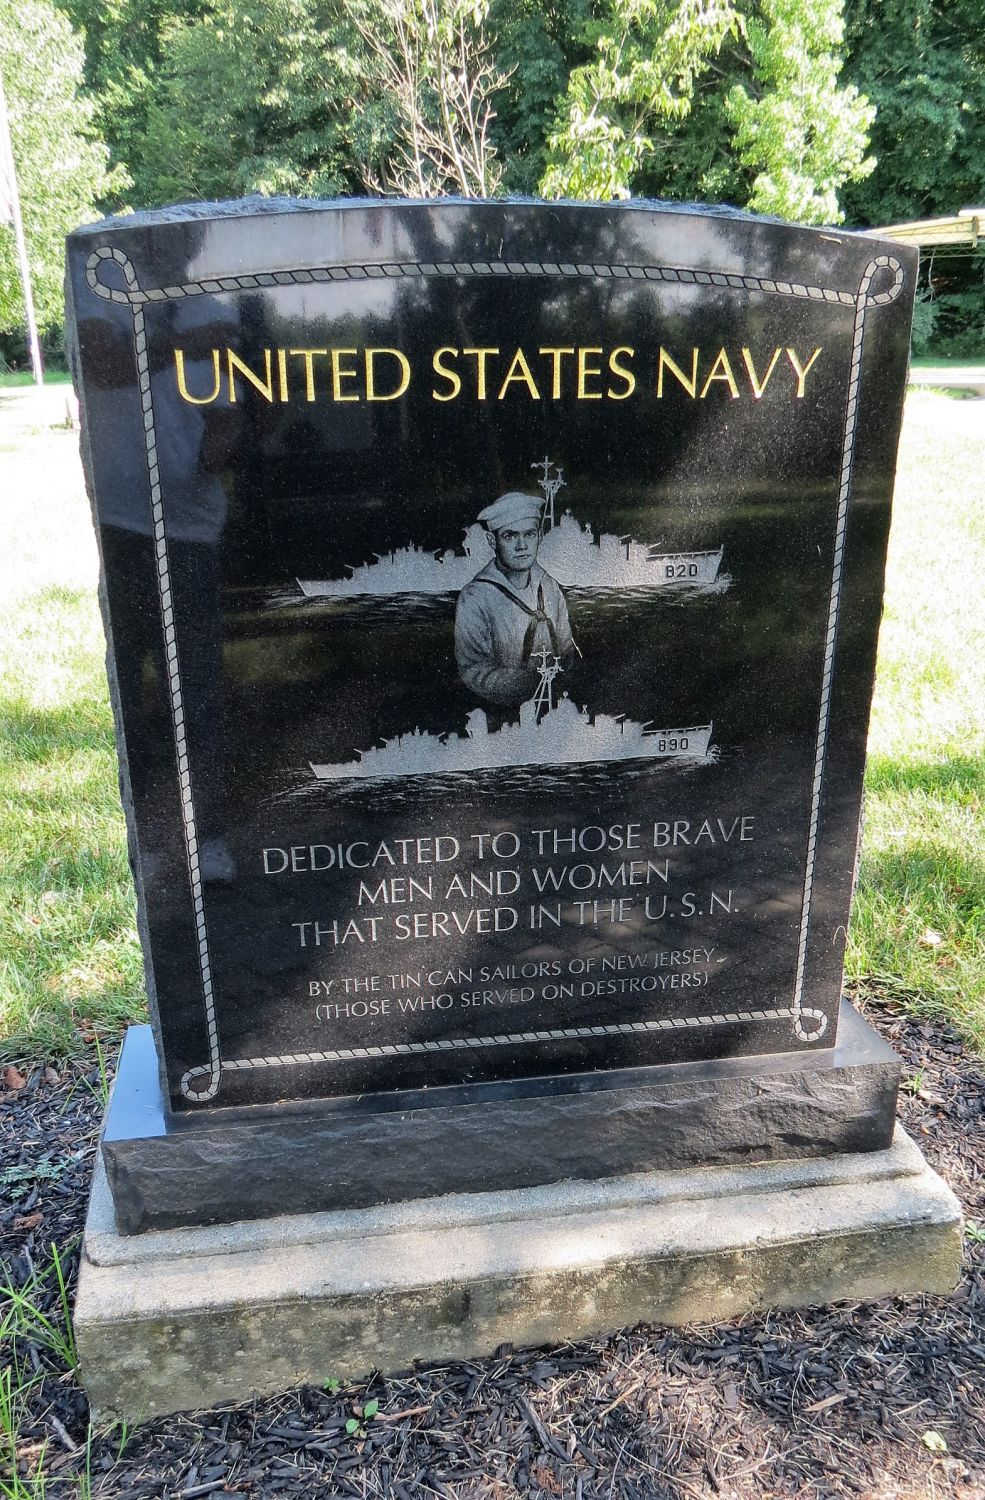 United States Navy Memorial, Wrightstown, New Jersey